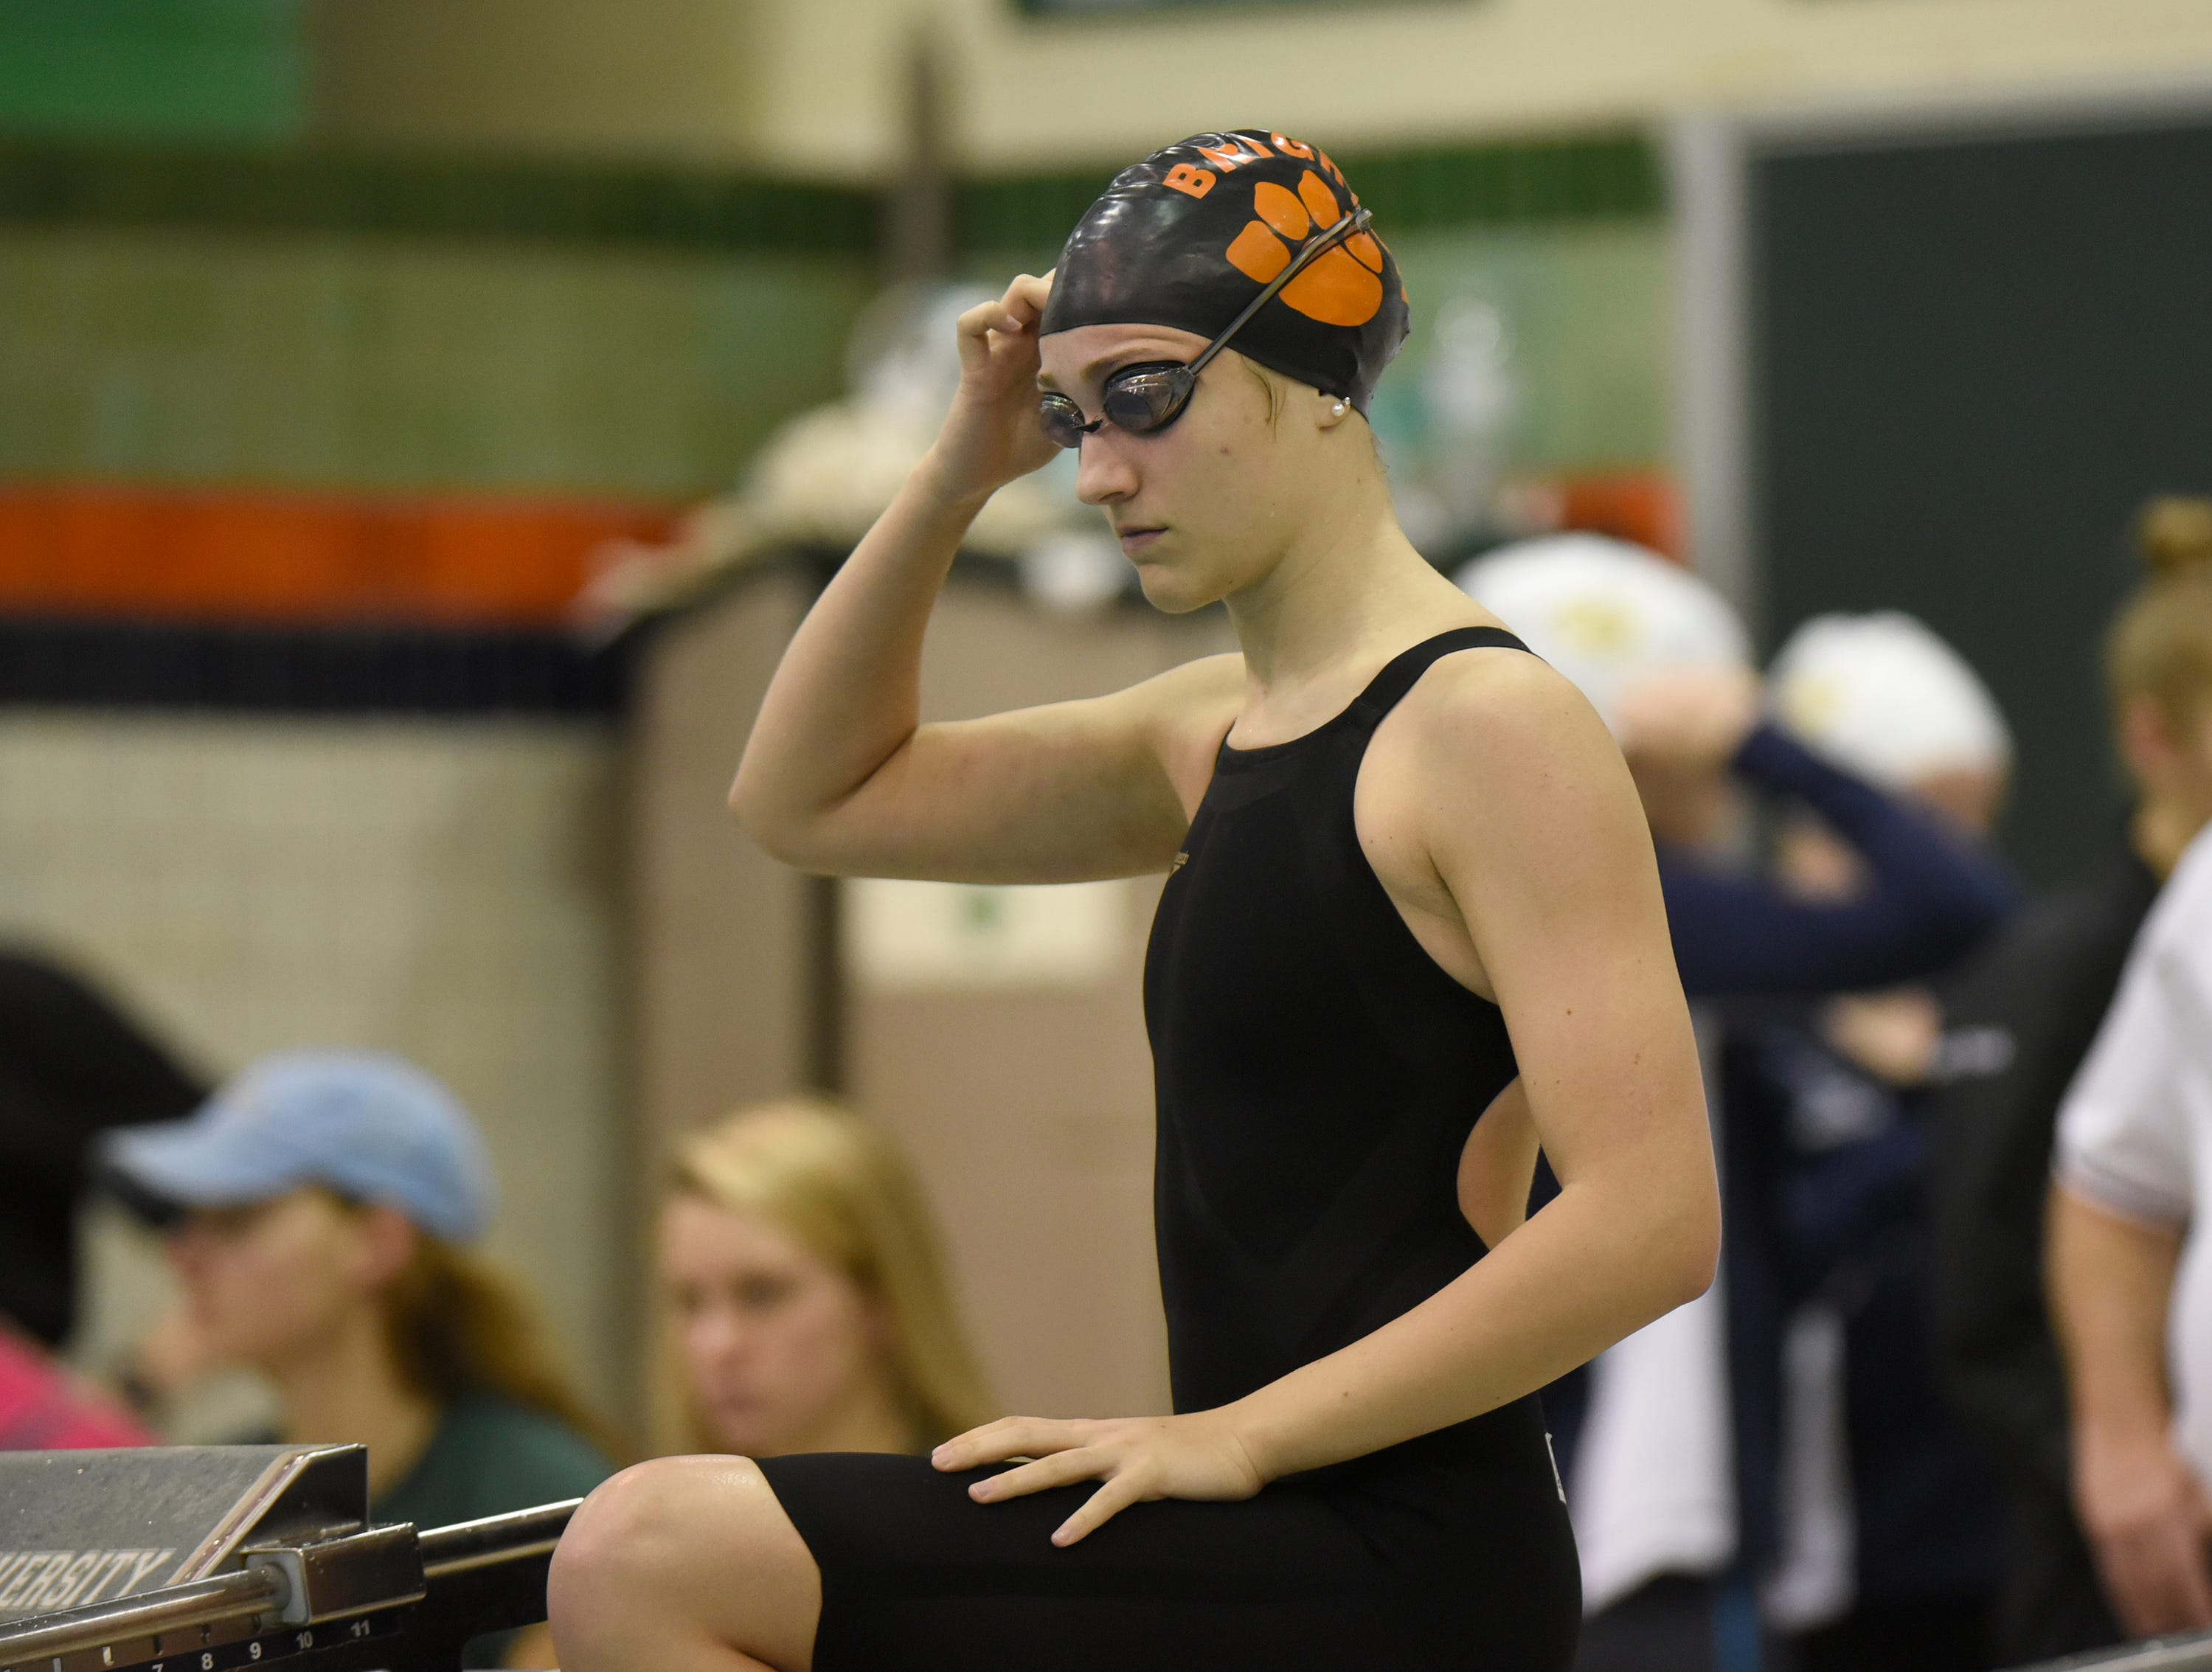 Chole Reed from Brighton gets ready for the 500 freestyle at the Division 1 girls swimming and diving championships held at Eastern Michigan University Nov. 17, 2018.